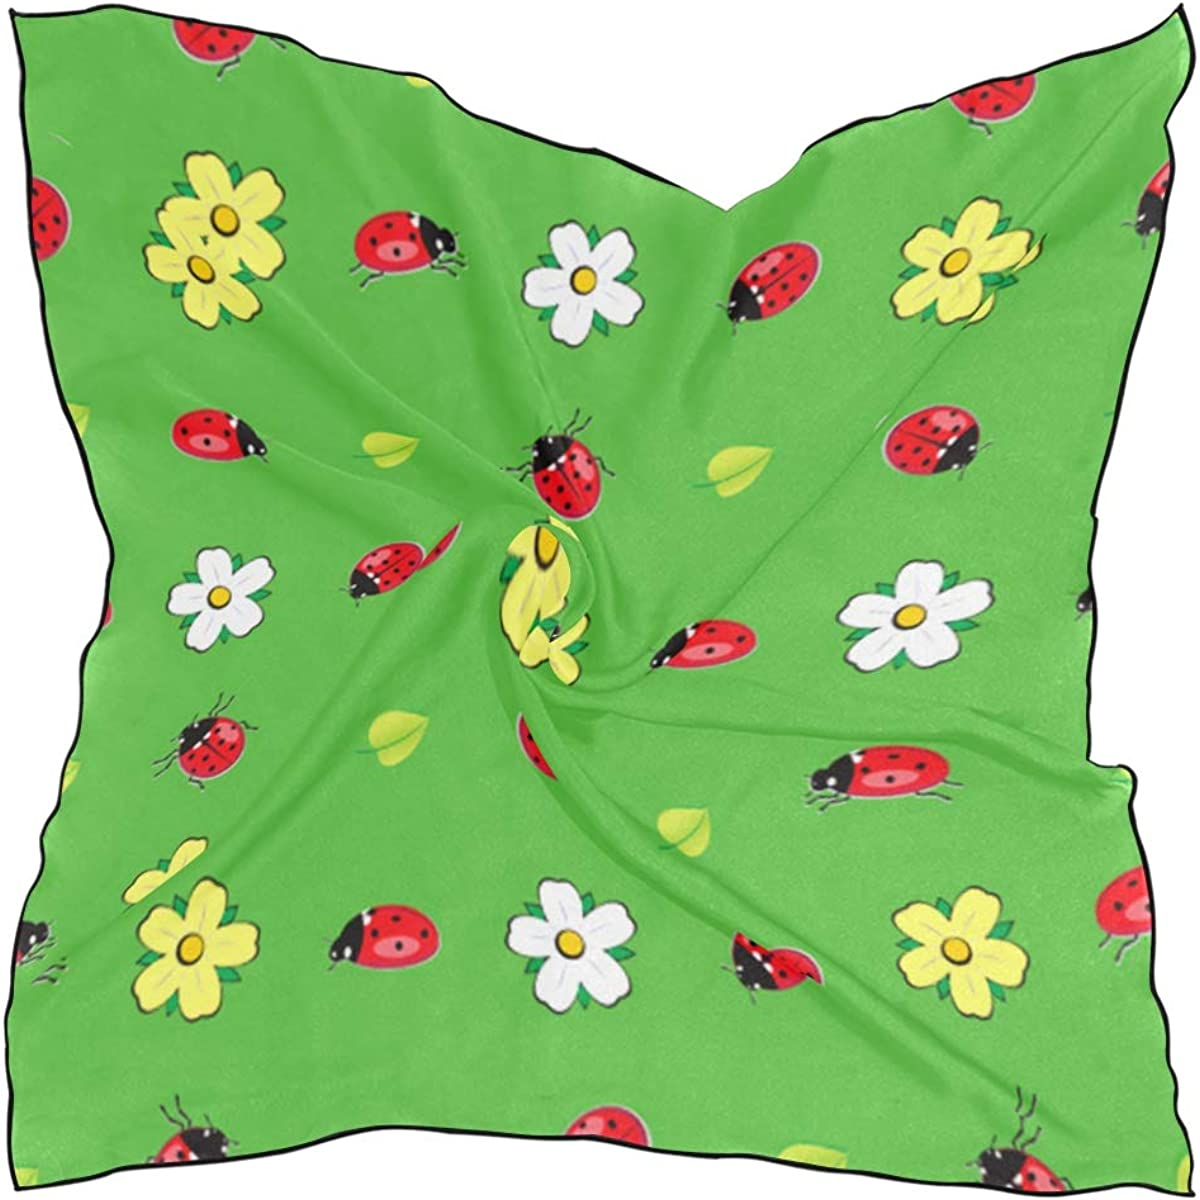 Women's Soft Polyester Silk Square Scarf Five-star Ladybug Cute Little Reptile Color Childlike Beast Red Dot Fashion Print Head & Hair Scarf Neckerchief Accessory-23.6x23.6 Inch